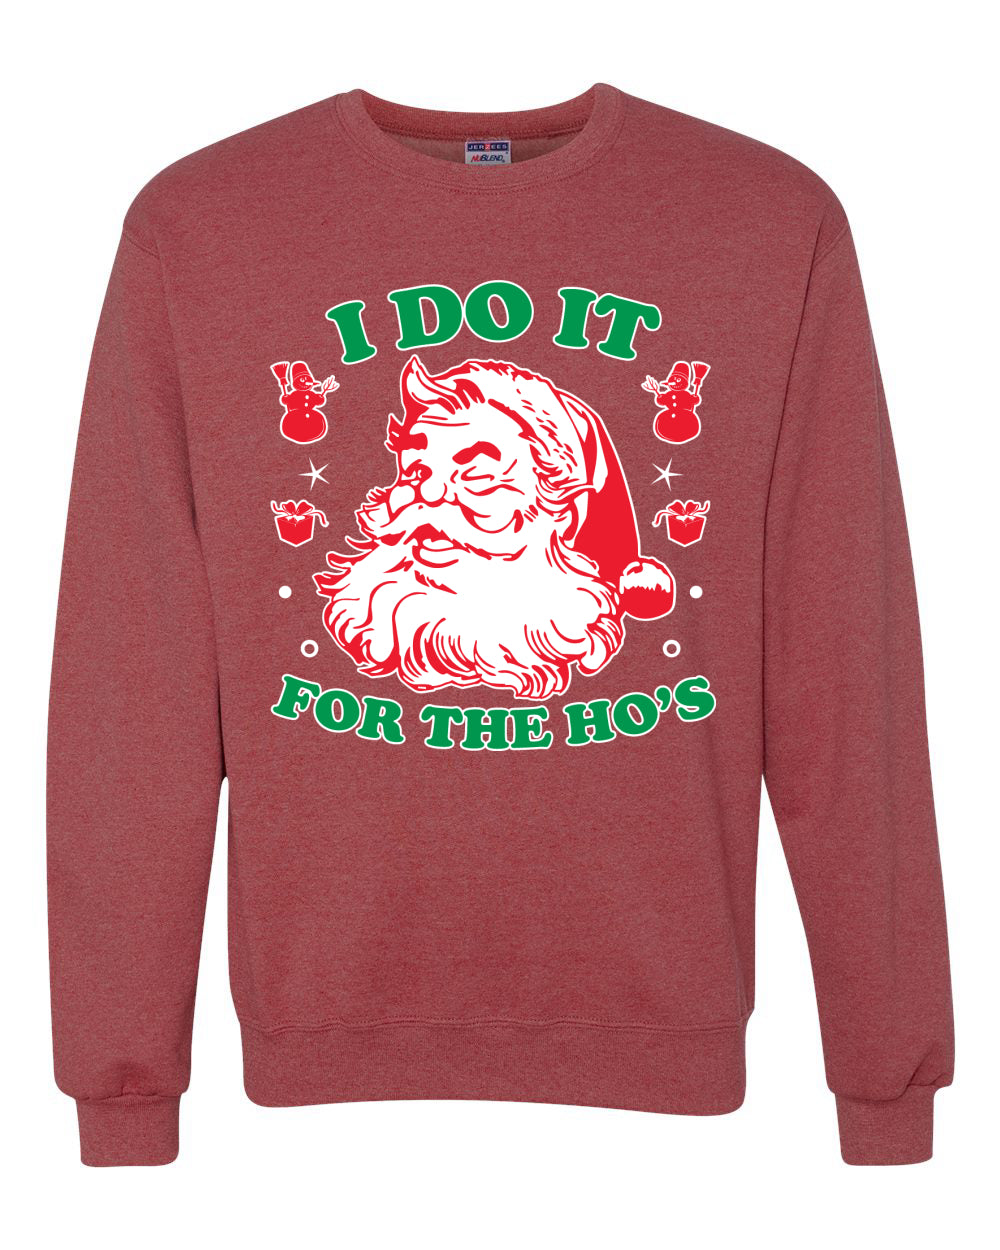 I Do it for the Hos Xmas Ugly Christmas Sweater Christmas Unisex Crewneck Graphic Sweatshirt